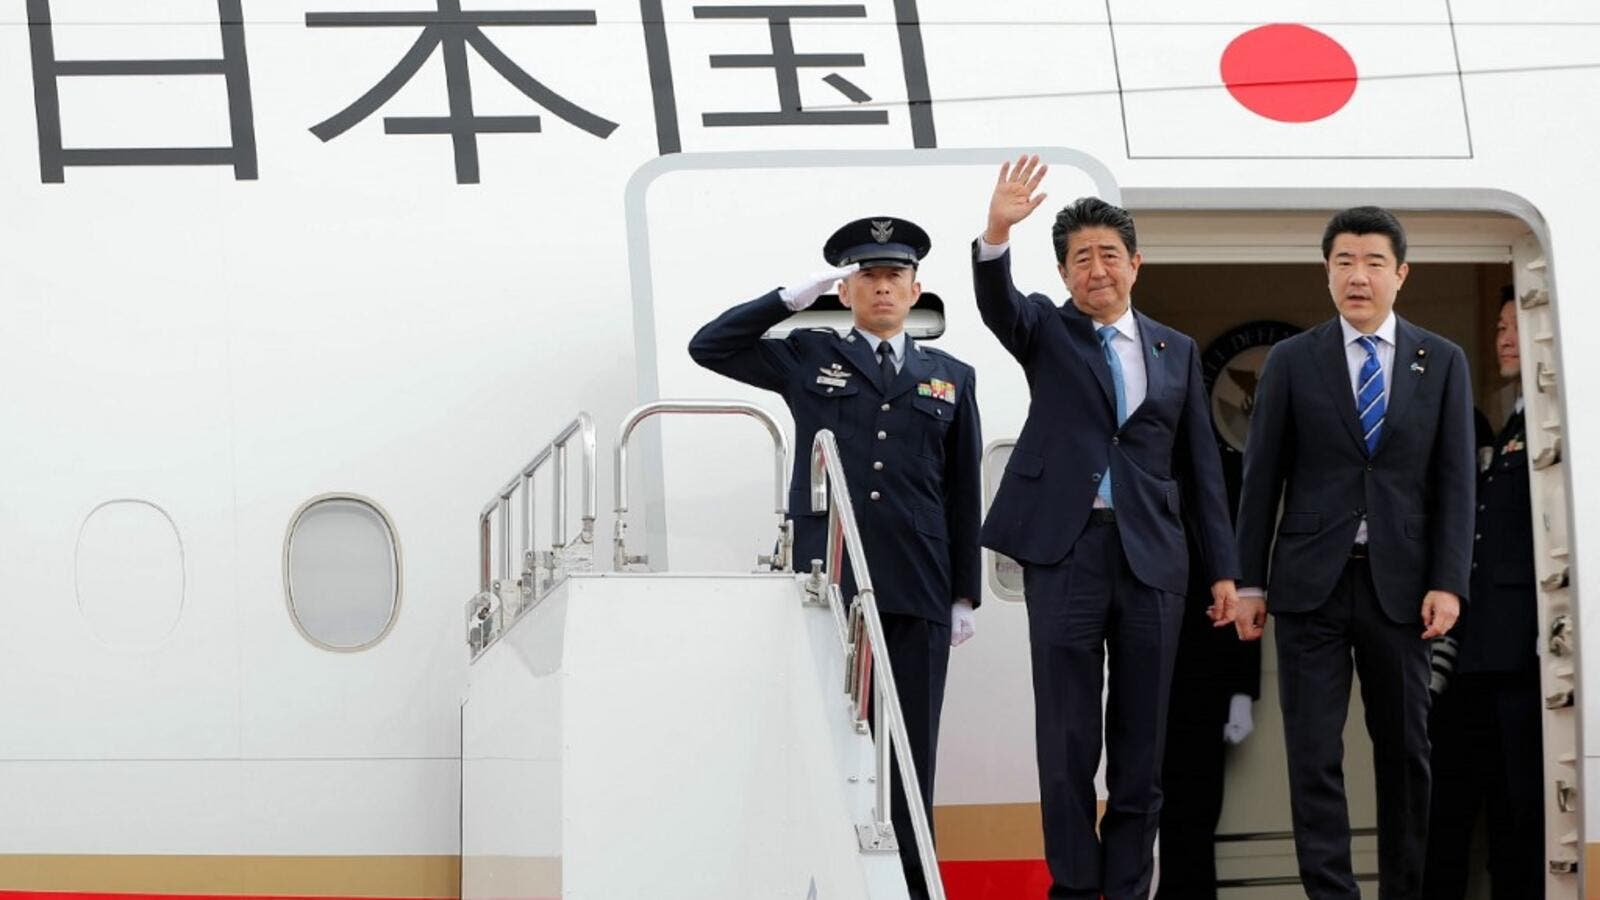 Japan's Prime Minister Shinzo Abe (C) waves to well-wishers upon his departure at Tokyo's Haneda Airport on June 12, 2019. Abe left for a two-day visit to Iran.  JIJI PRESS / AFP